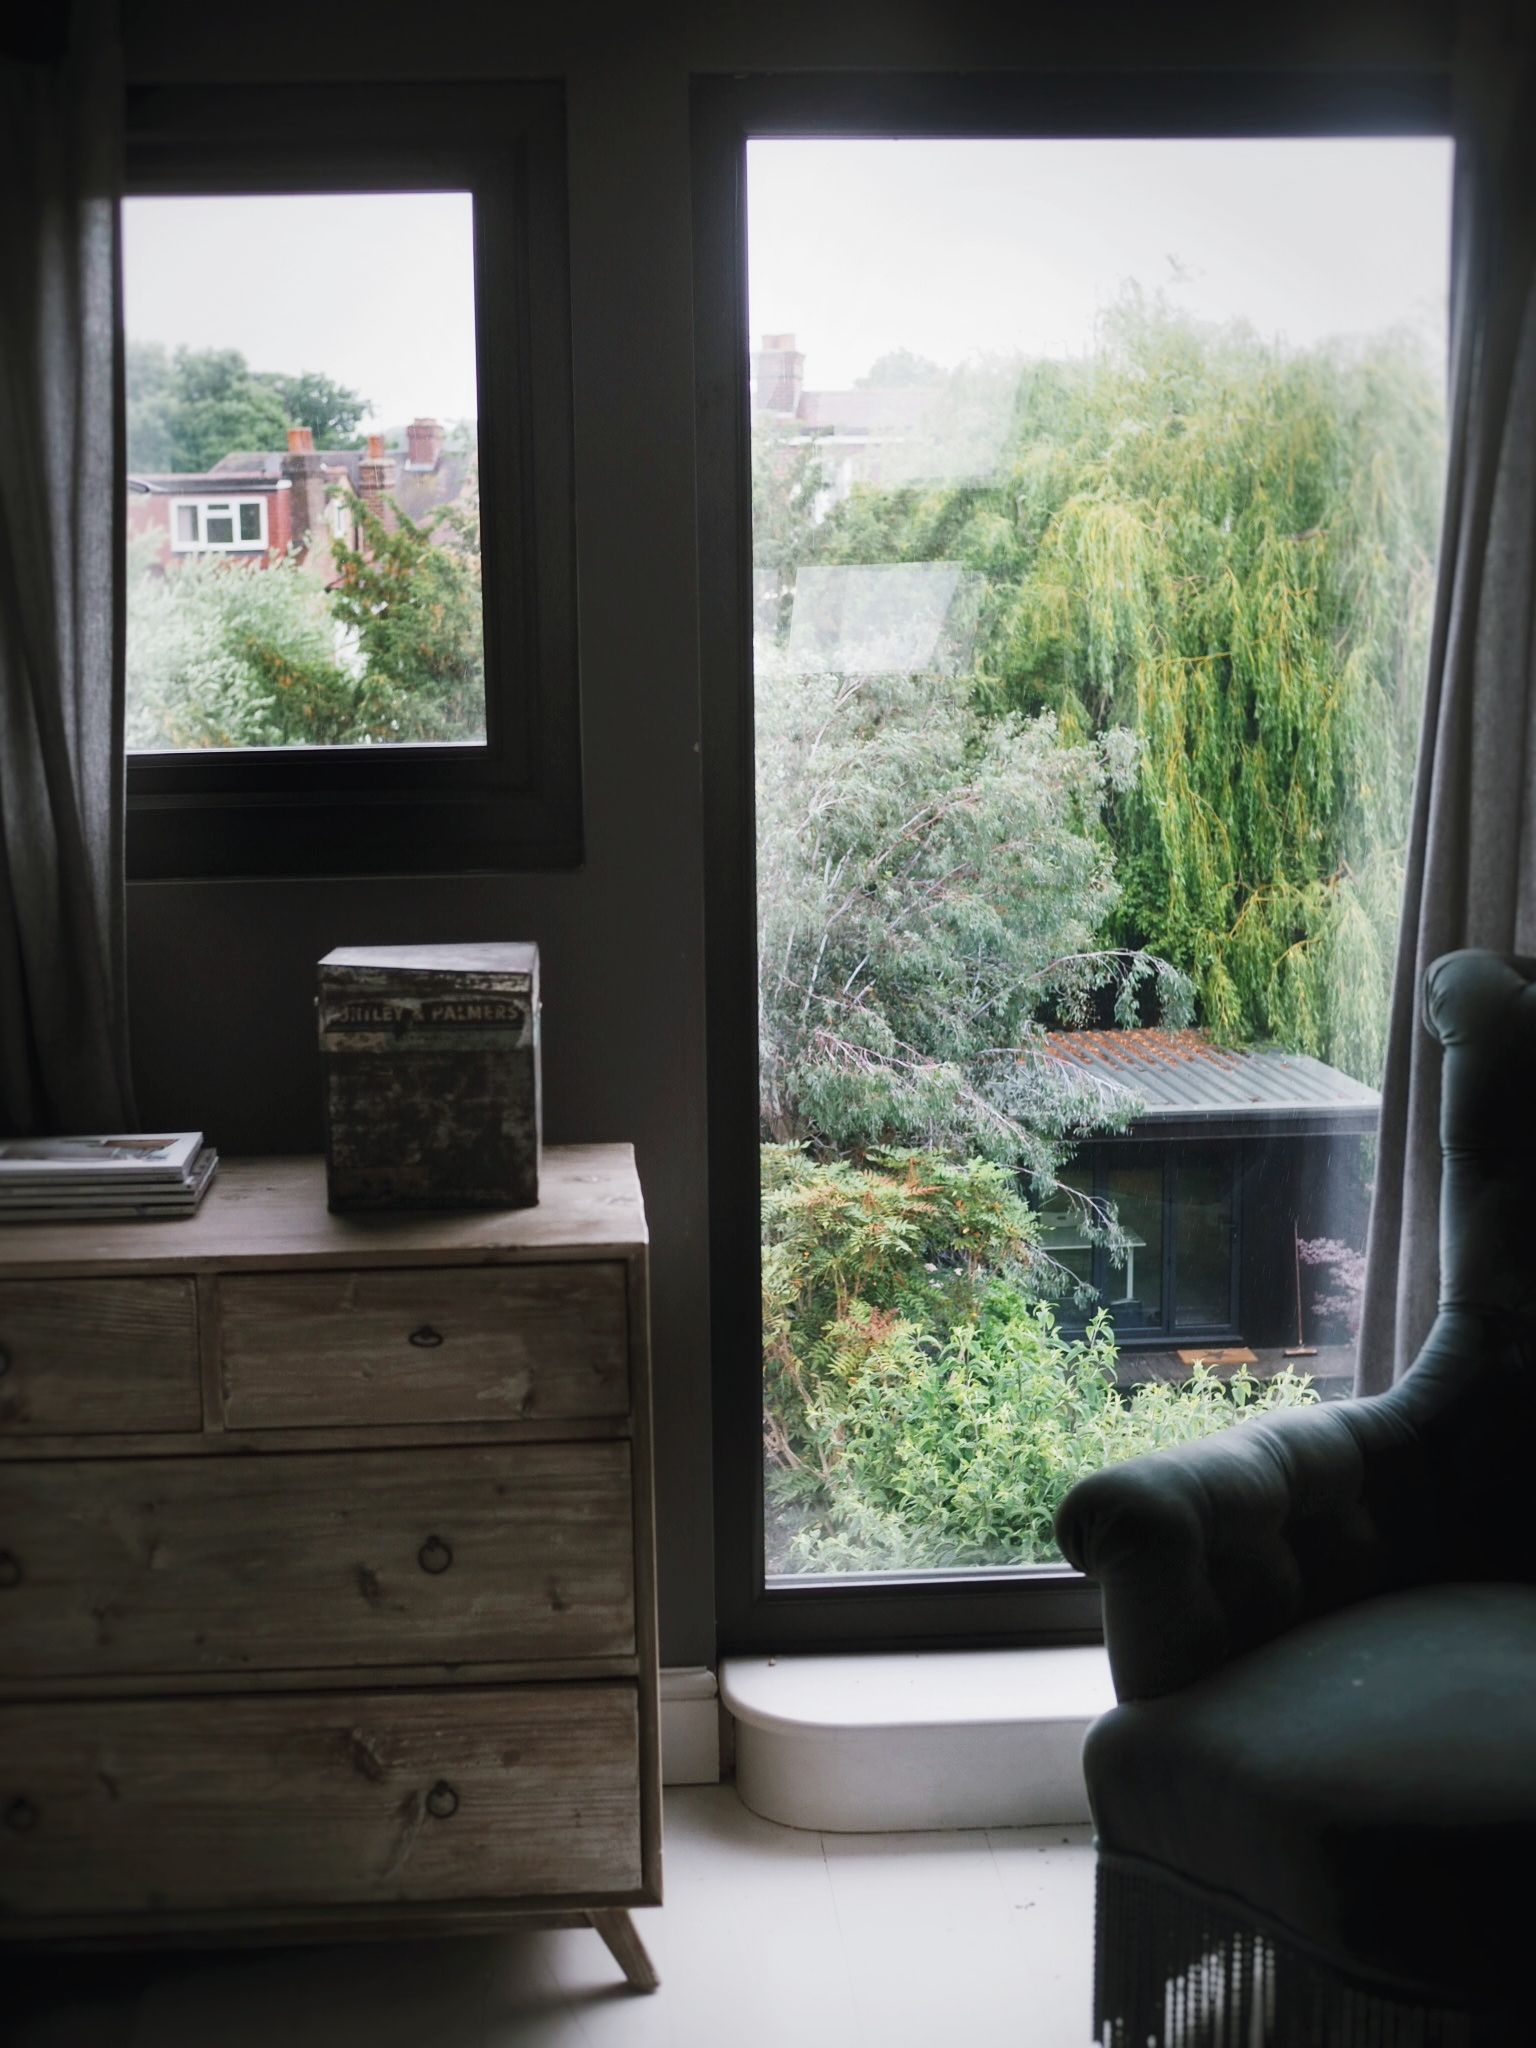 I love sitting in this corner looking out over the garden